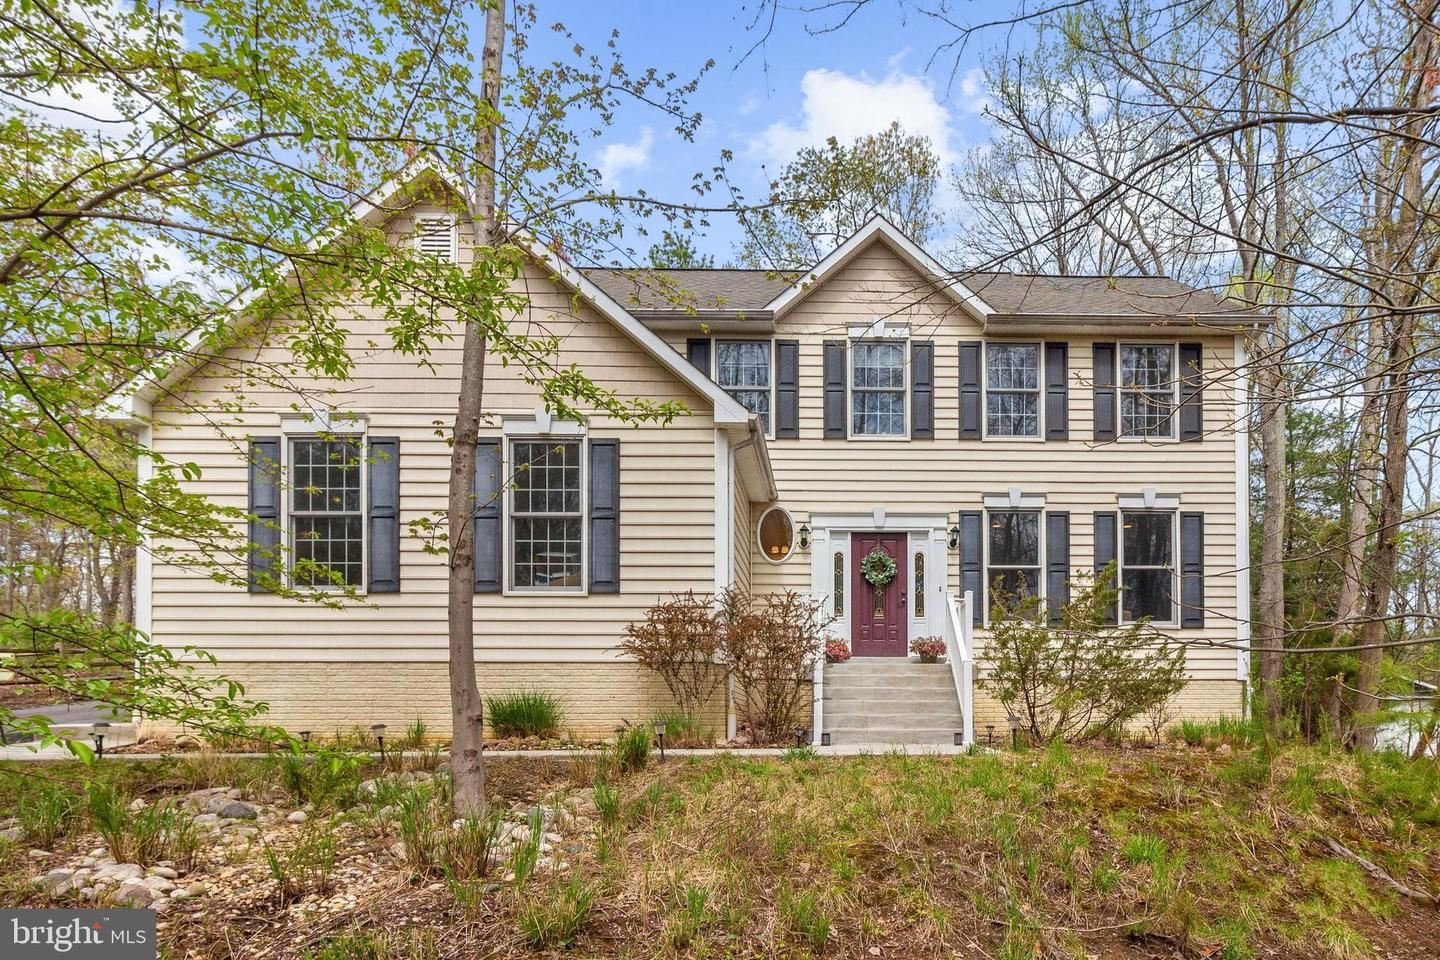 1102 BAY HIGHLANDS DR, Annapolis, MD 21403 - MLS#: MDAA463696